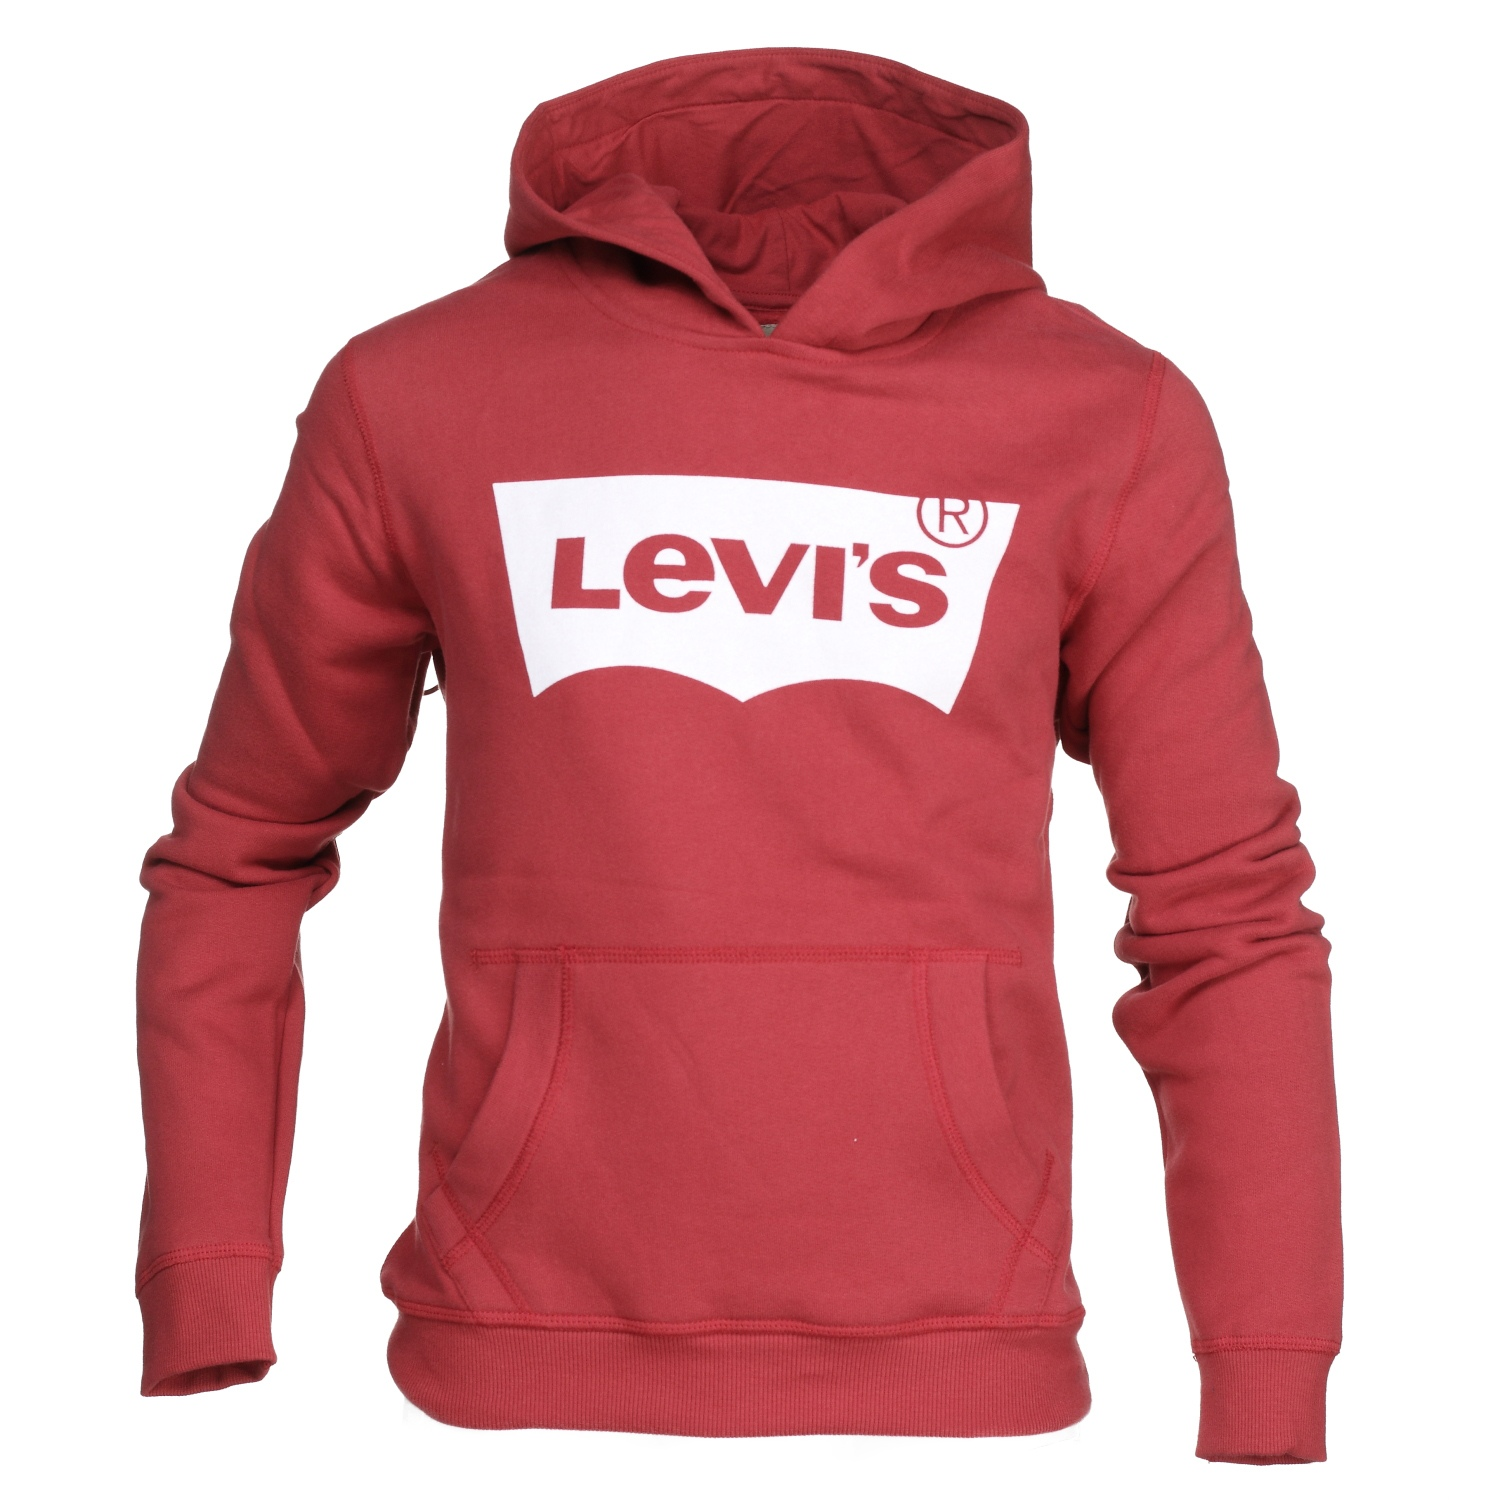 http://www.leadermode.com/133420/levis-n91503a-03-red.jpg